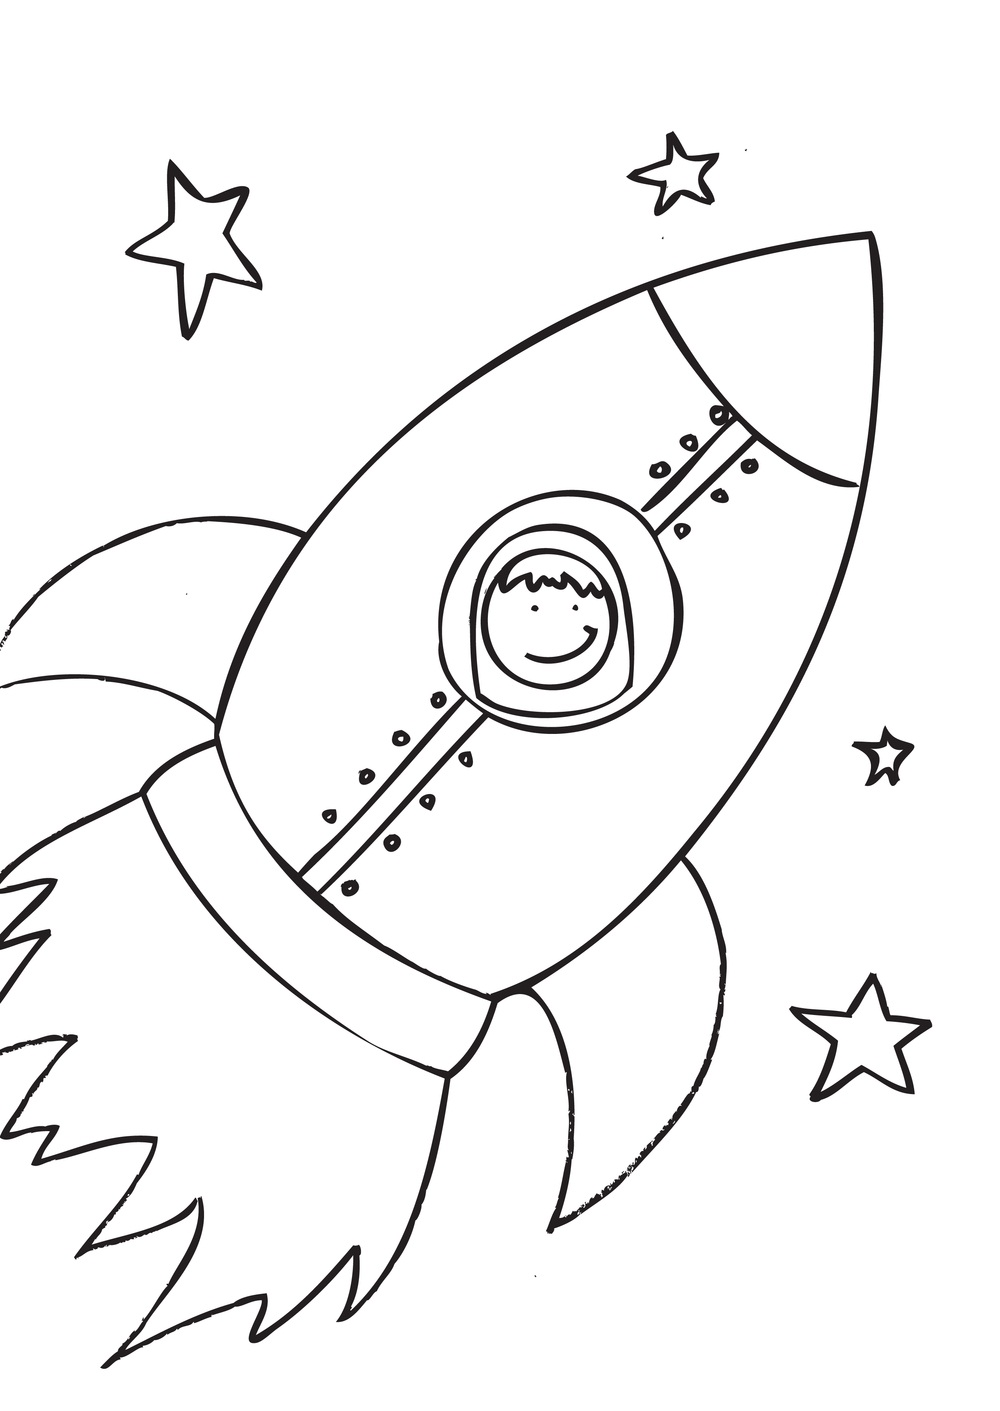 Rocket Ship Pictures For Kids